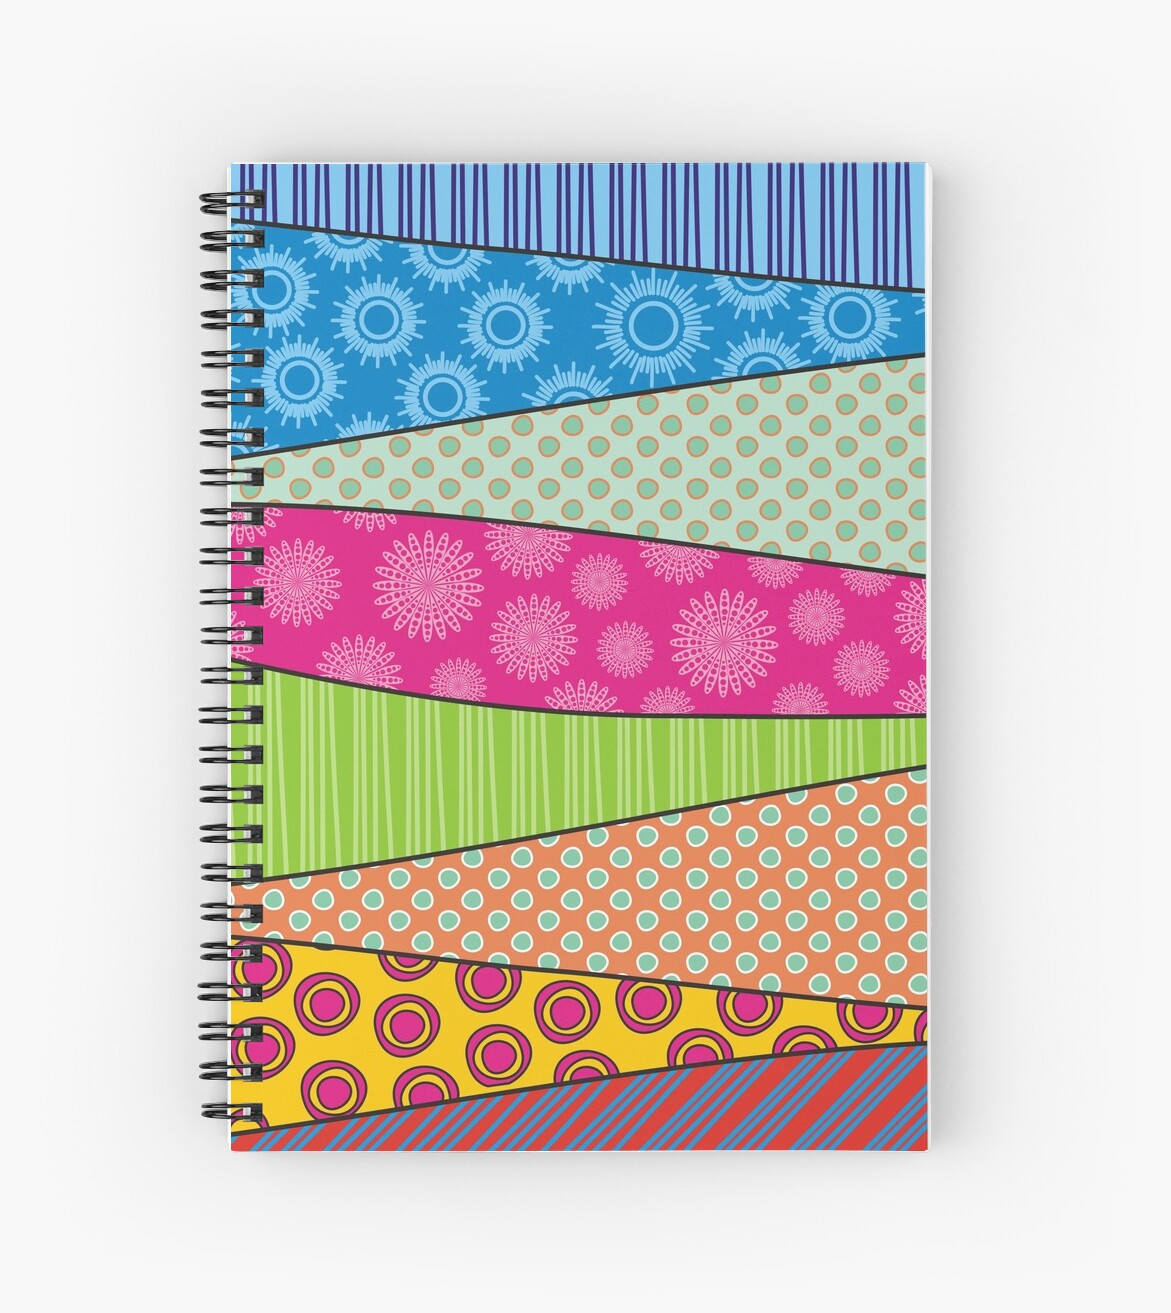 doodles design no 1 by artiseverything